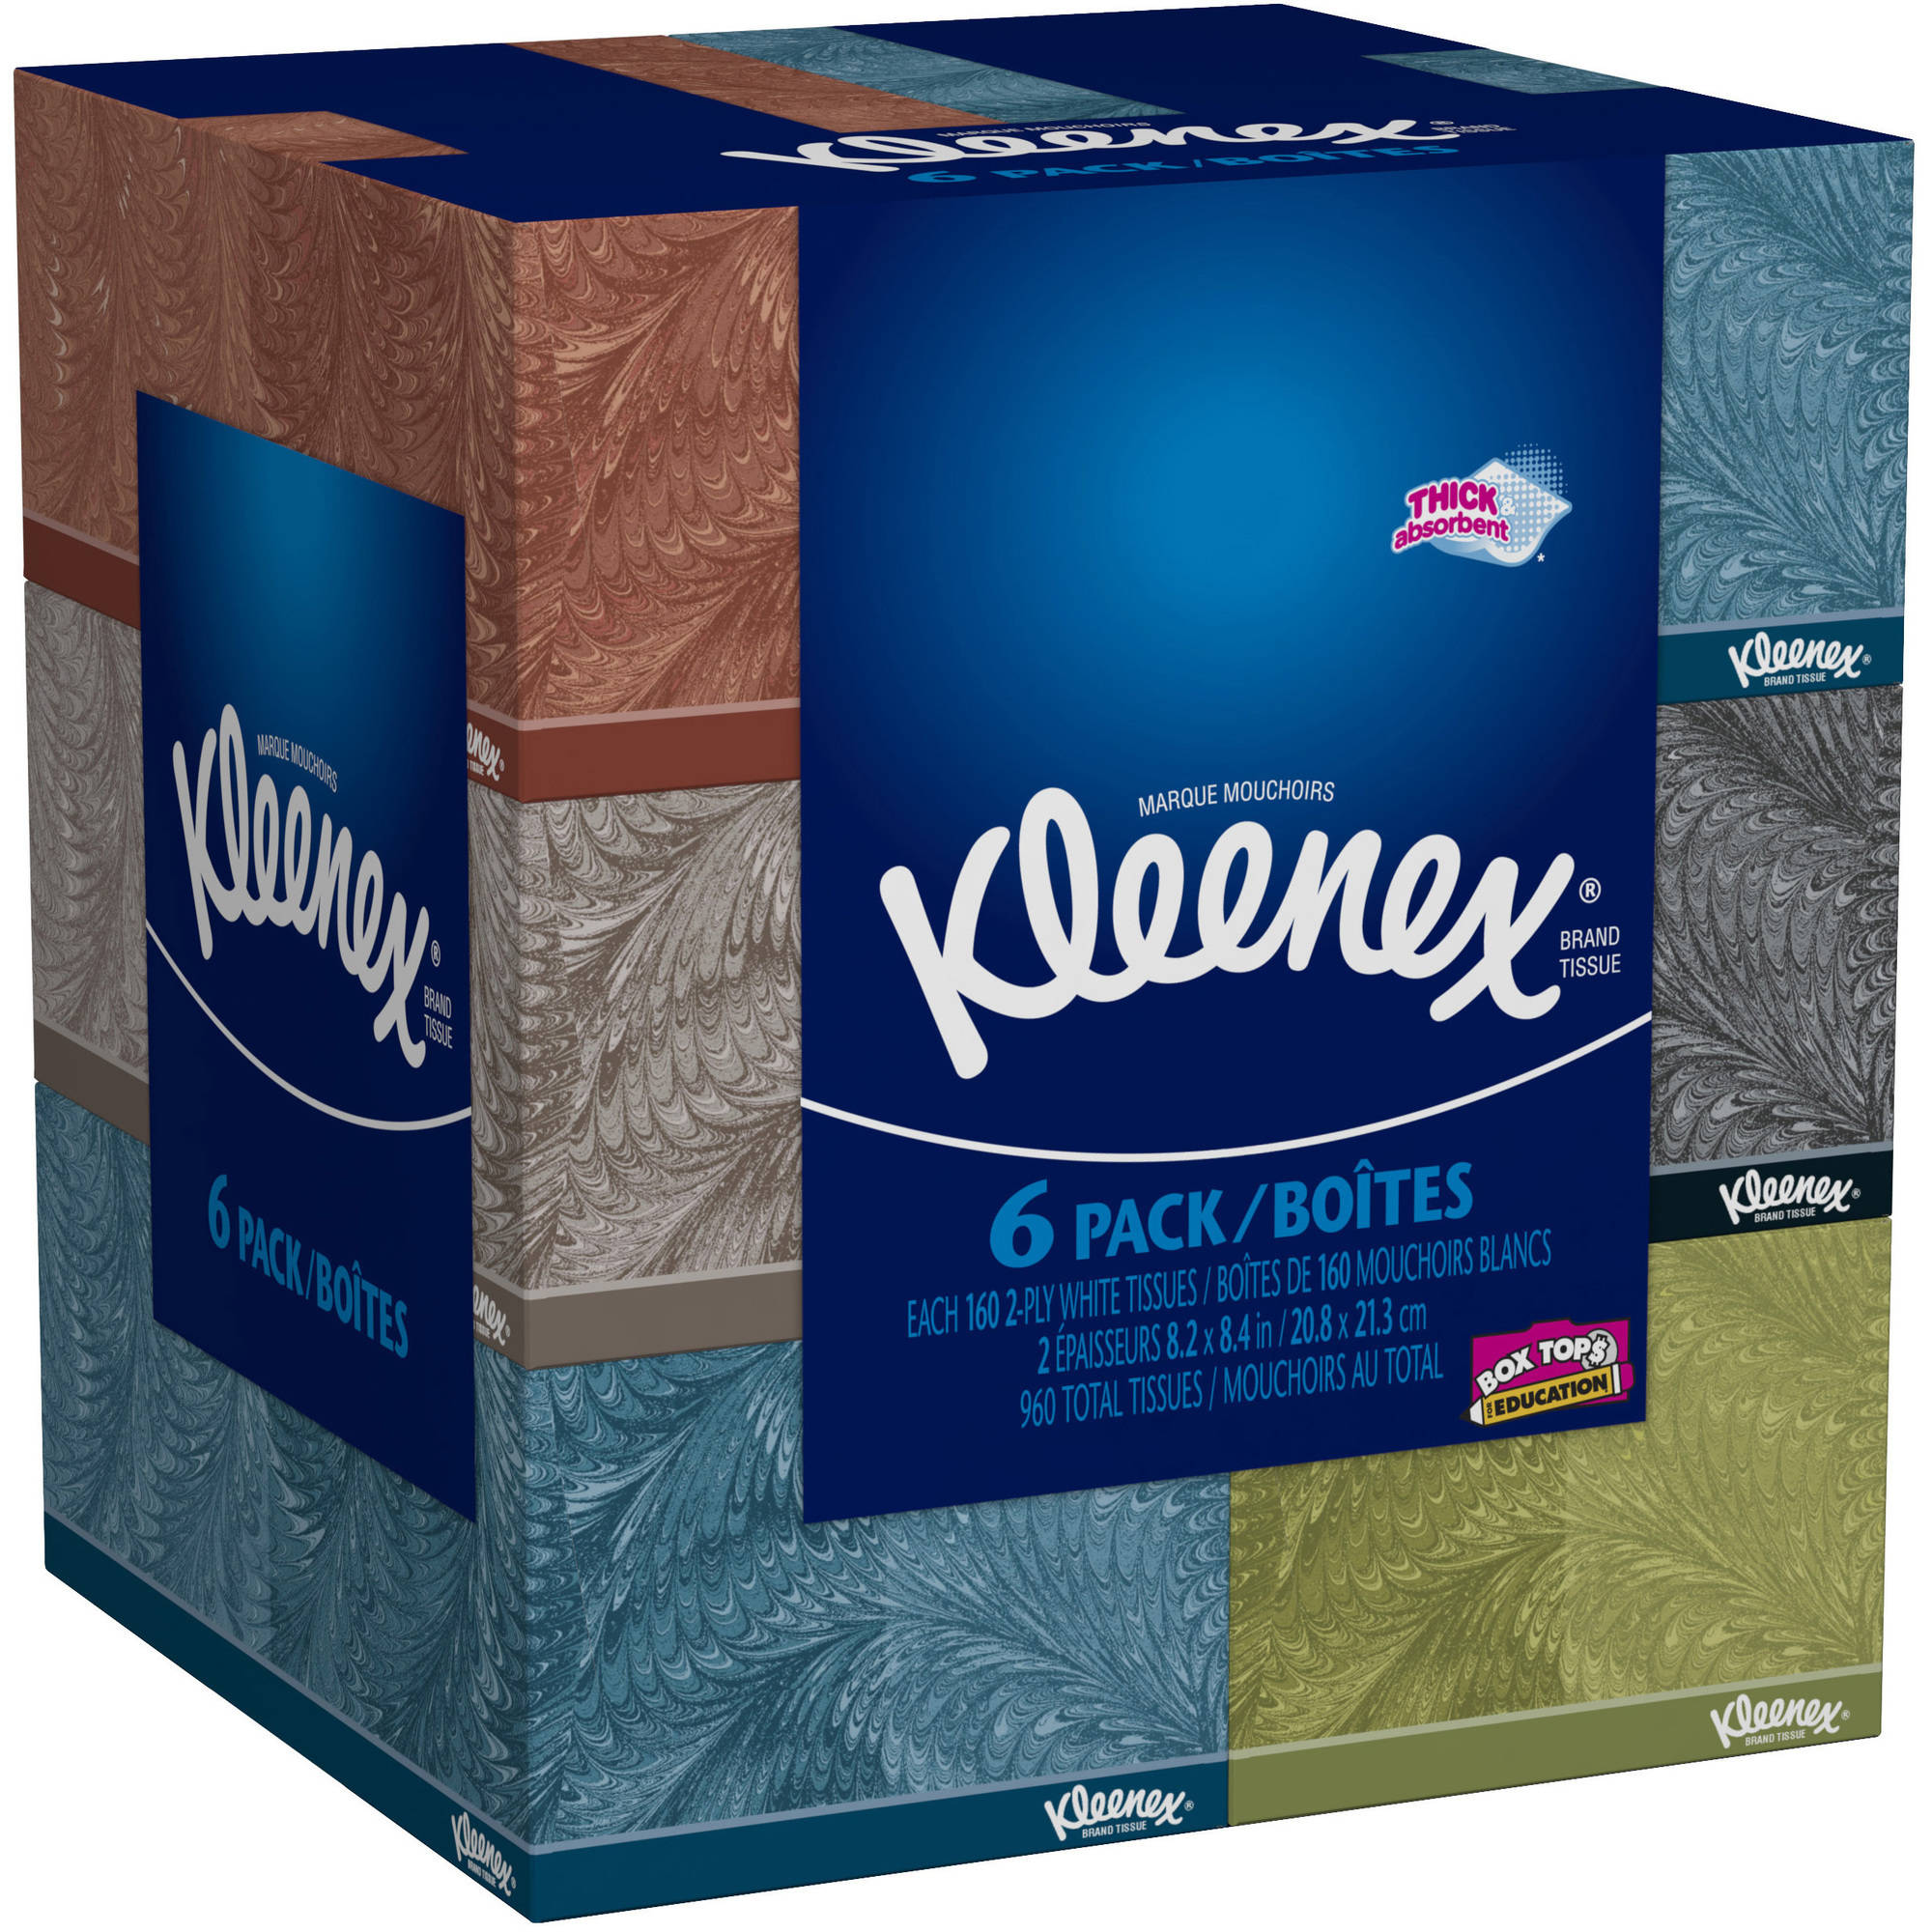 Kleenex Facial Tissues, Everyday, 160 Sheets, Pack of 6 (Designs May Vary)